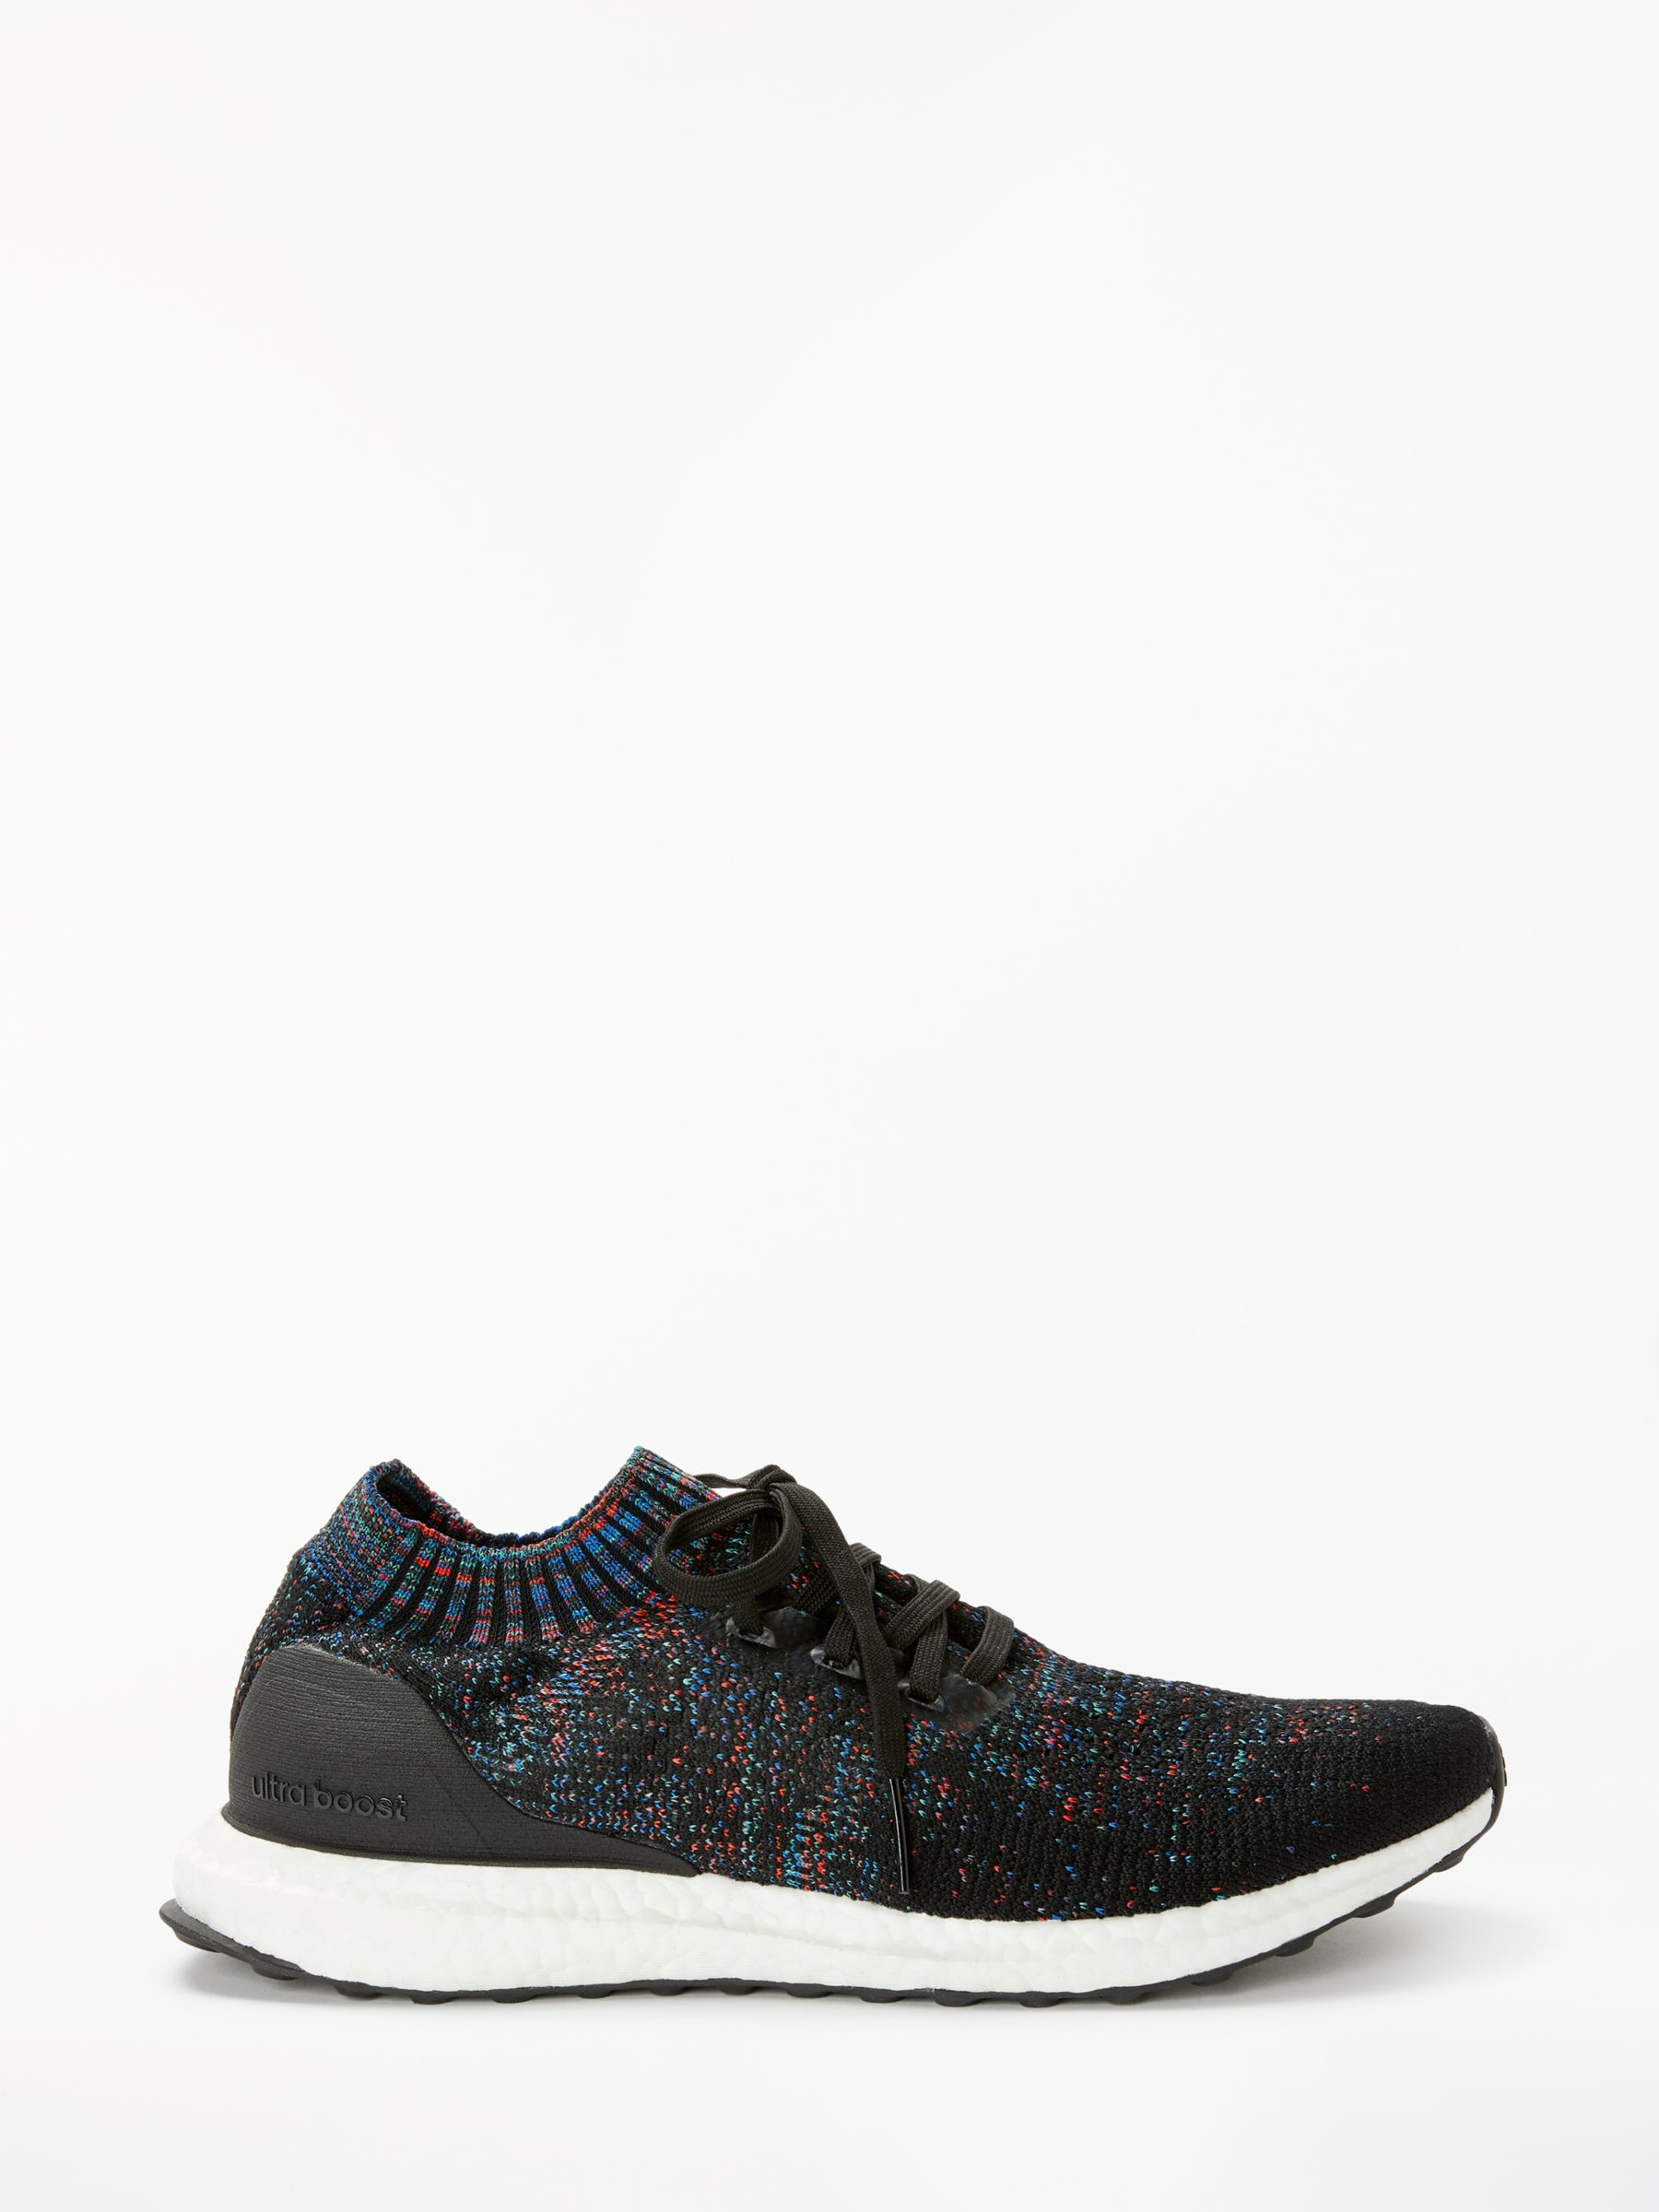 58b7aaee2 adidas UltraBOOST Uncaged Men's Running Shoes, Core Black/Active Red at  John Lewis & Partners